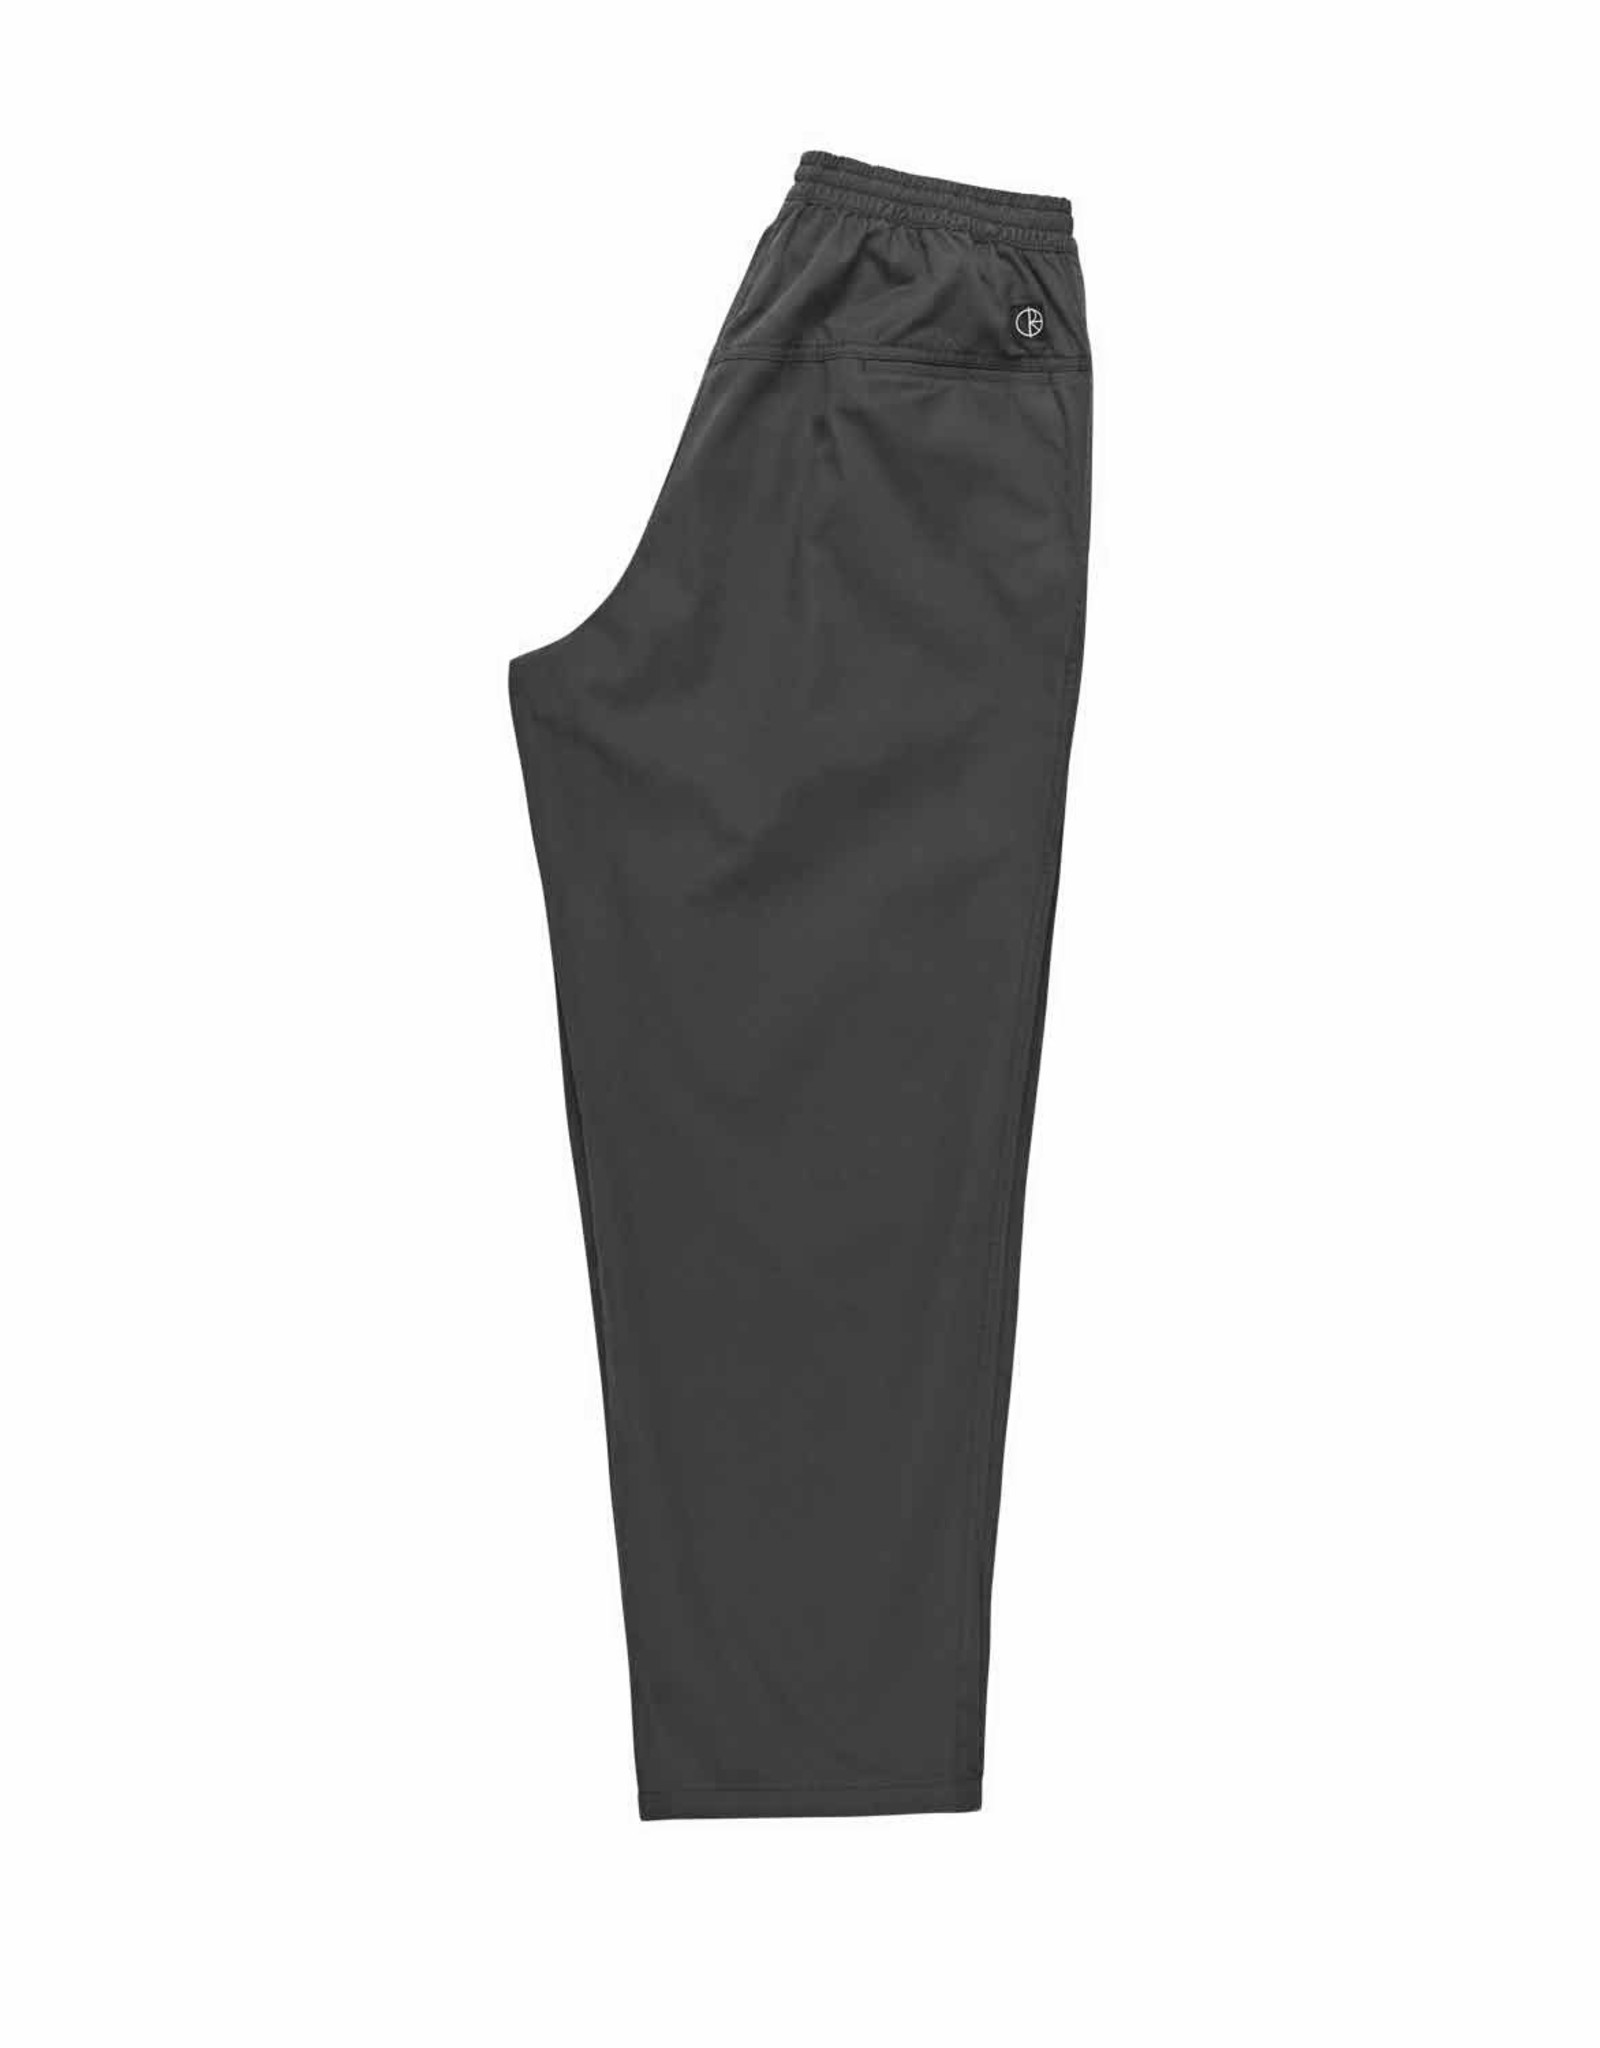 POLAR SURF PANT - GRAPHITE